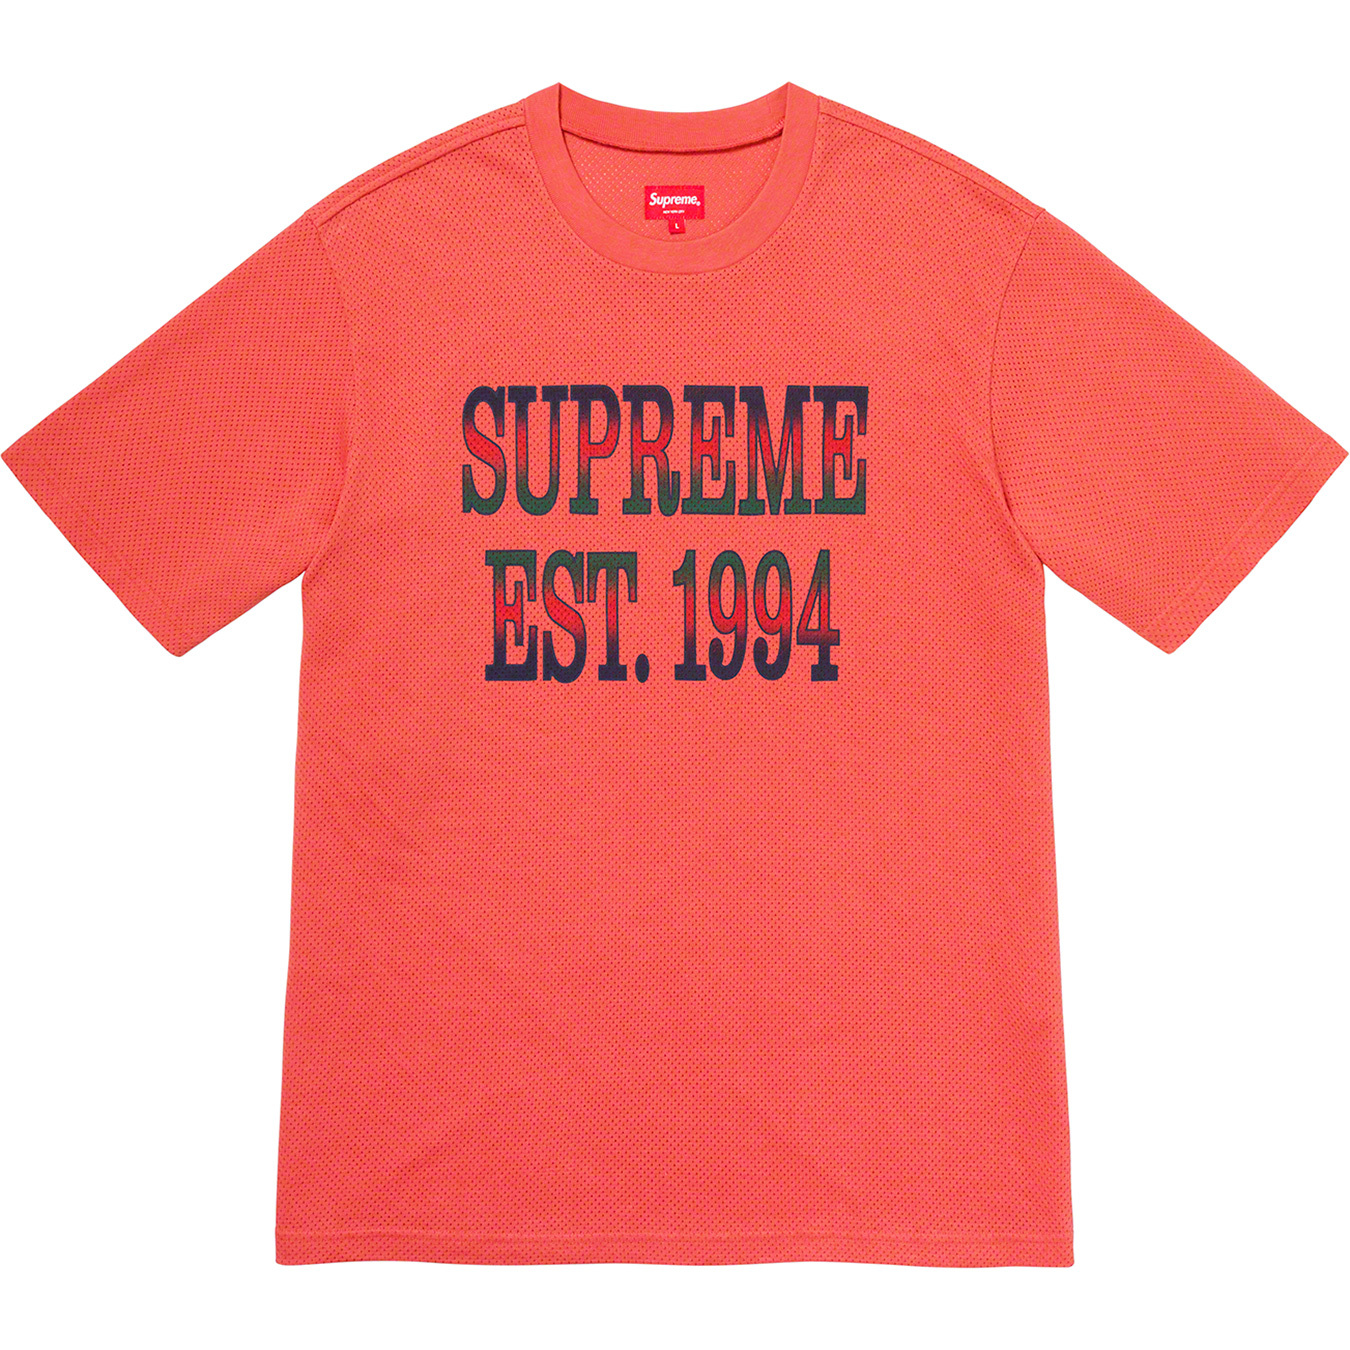 supreme-20ss-spring-summer-cotton-mesh-gradient-logo-s-s-top